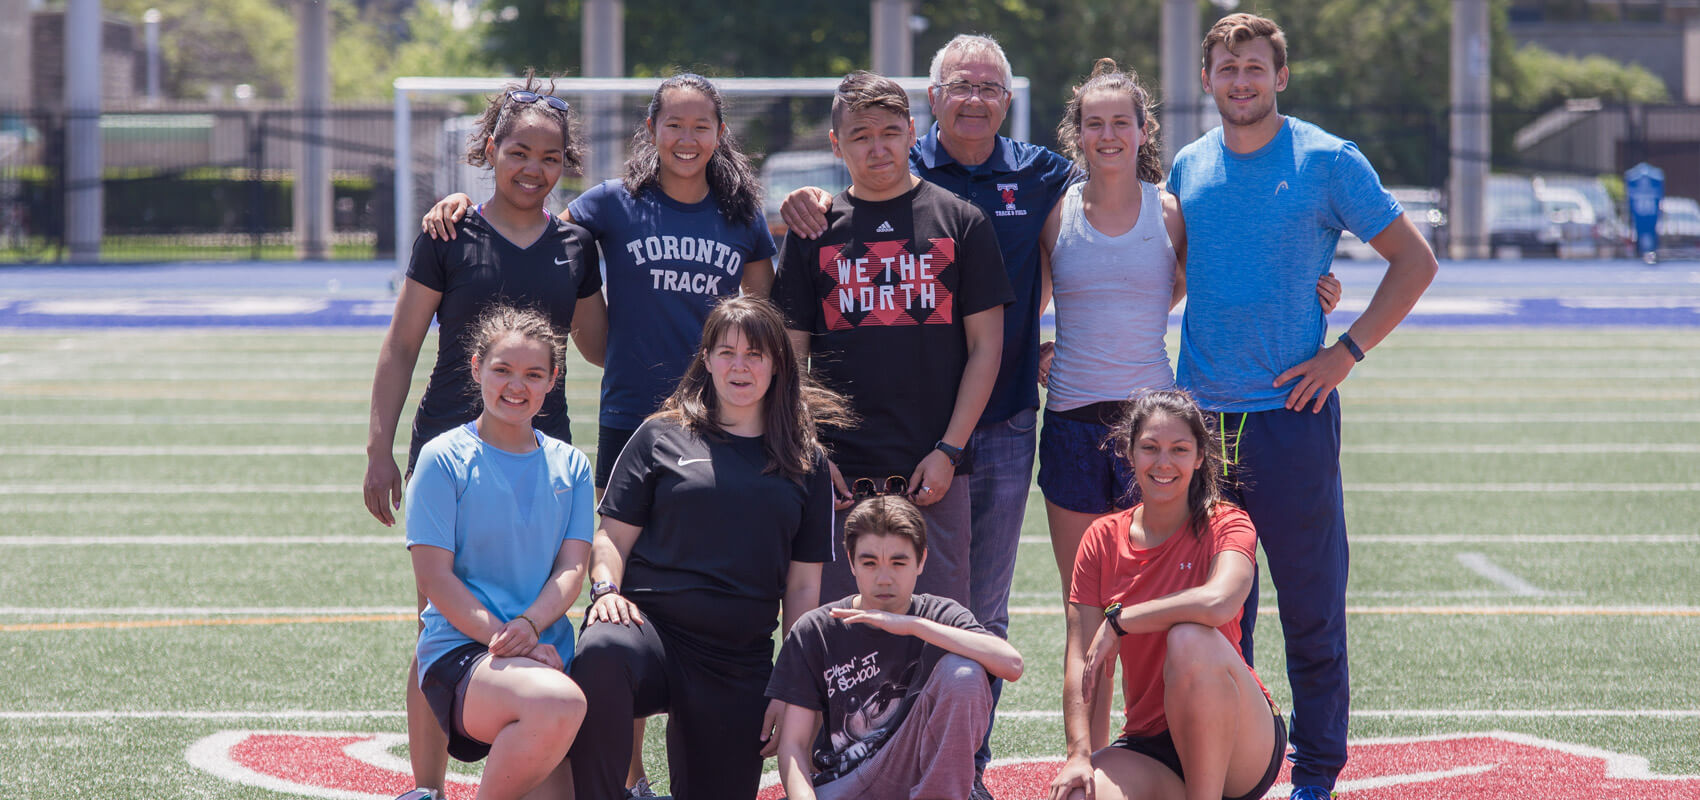 Maggie MacDonnell (bottom row, second from left) with her Salluit Run Club at the University of Toronto